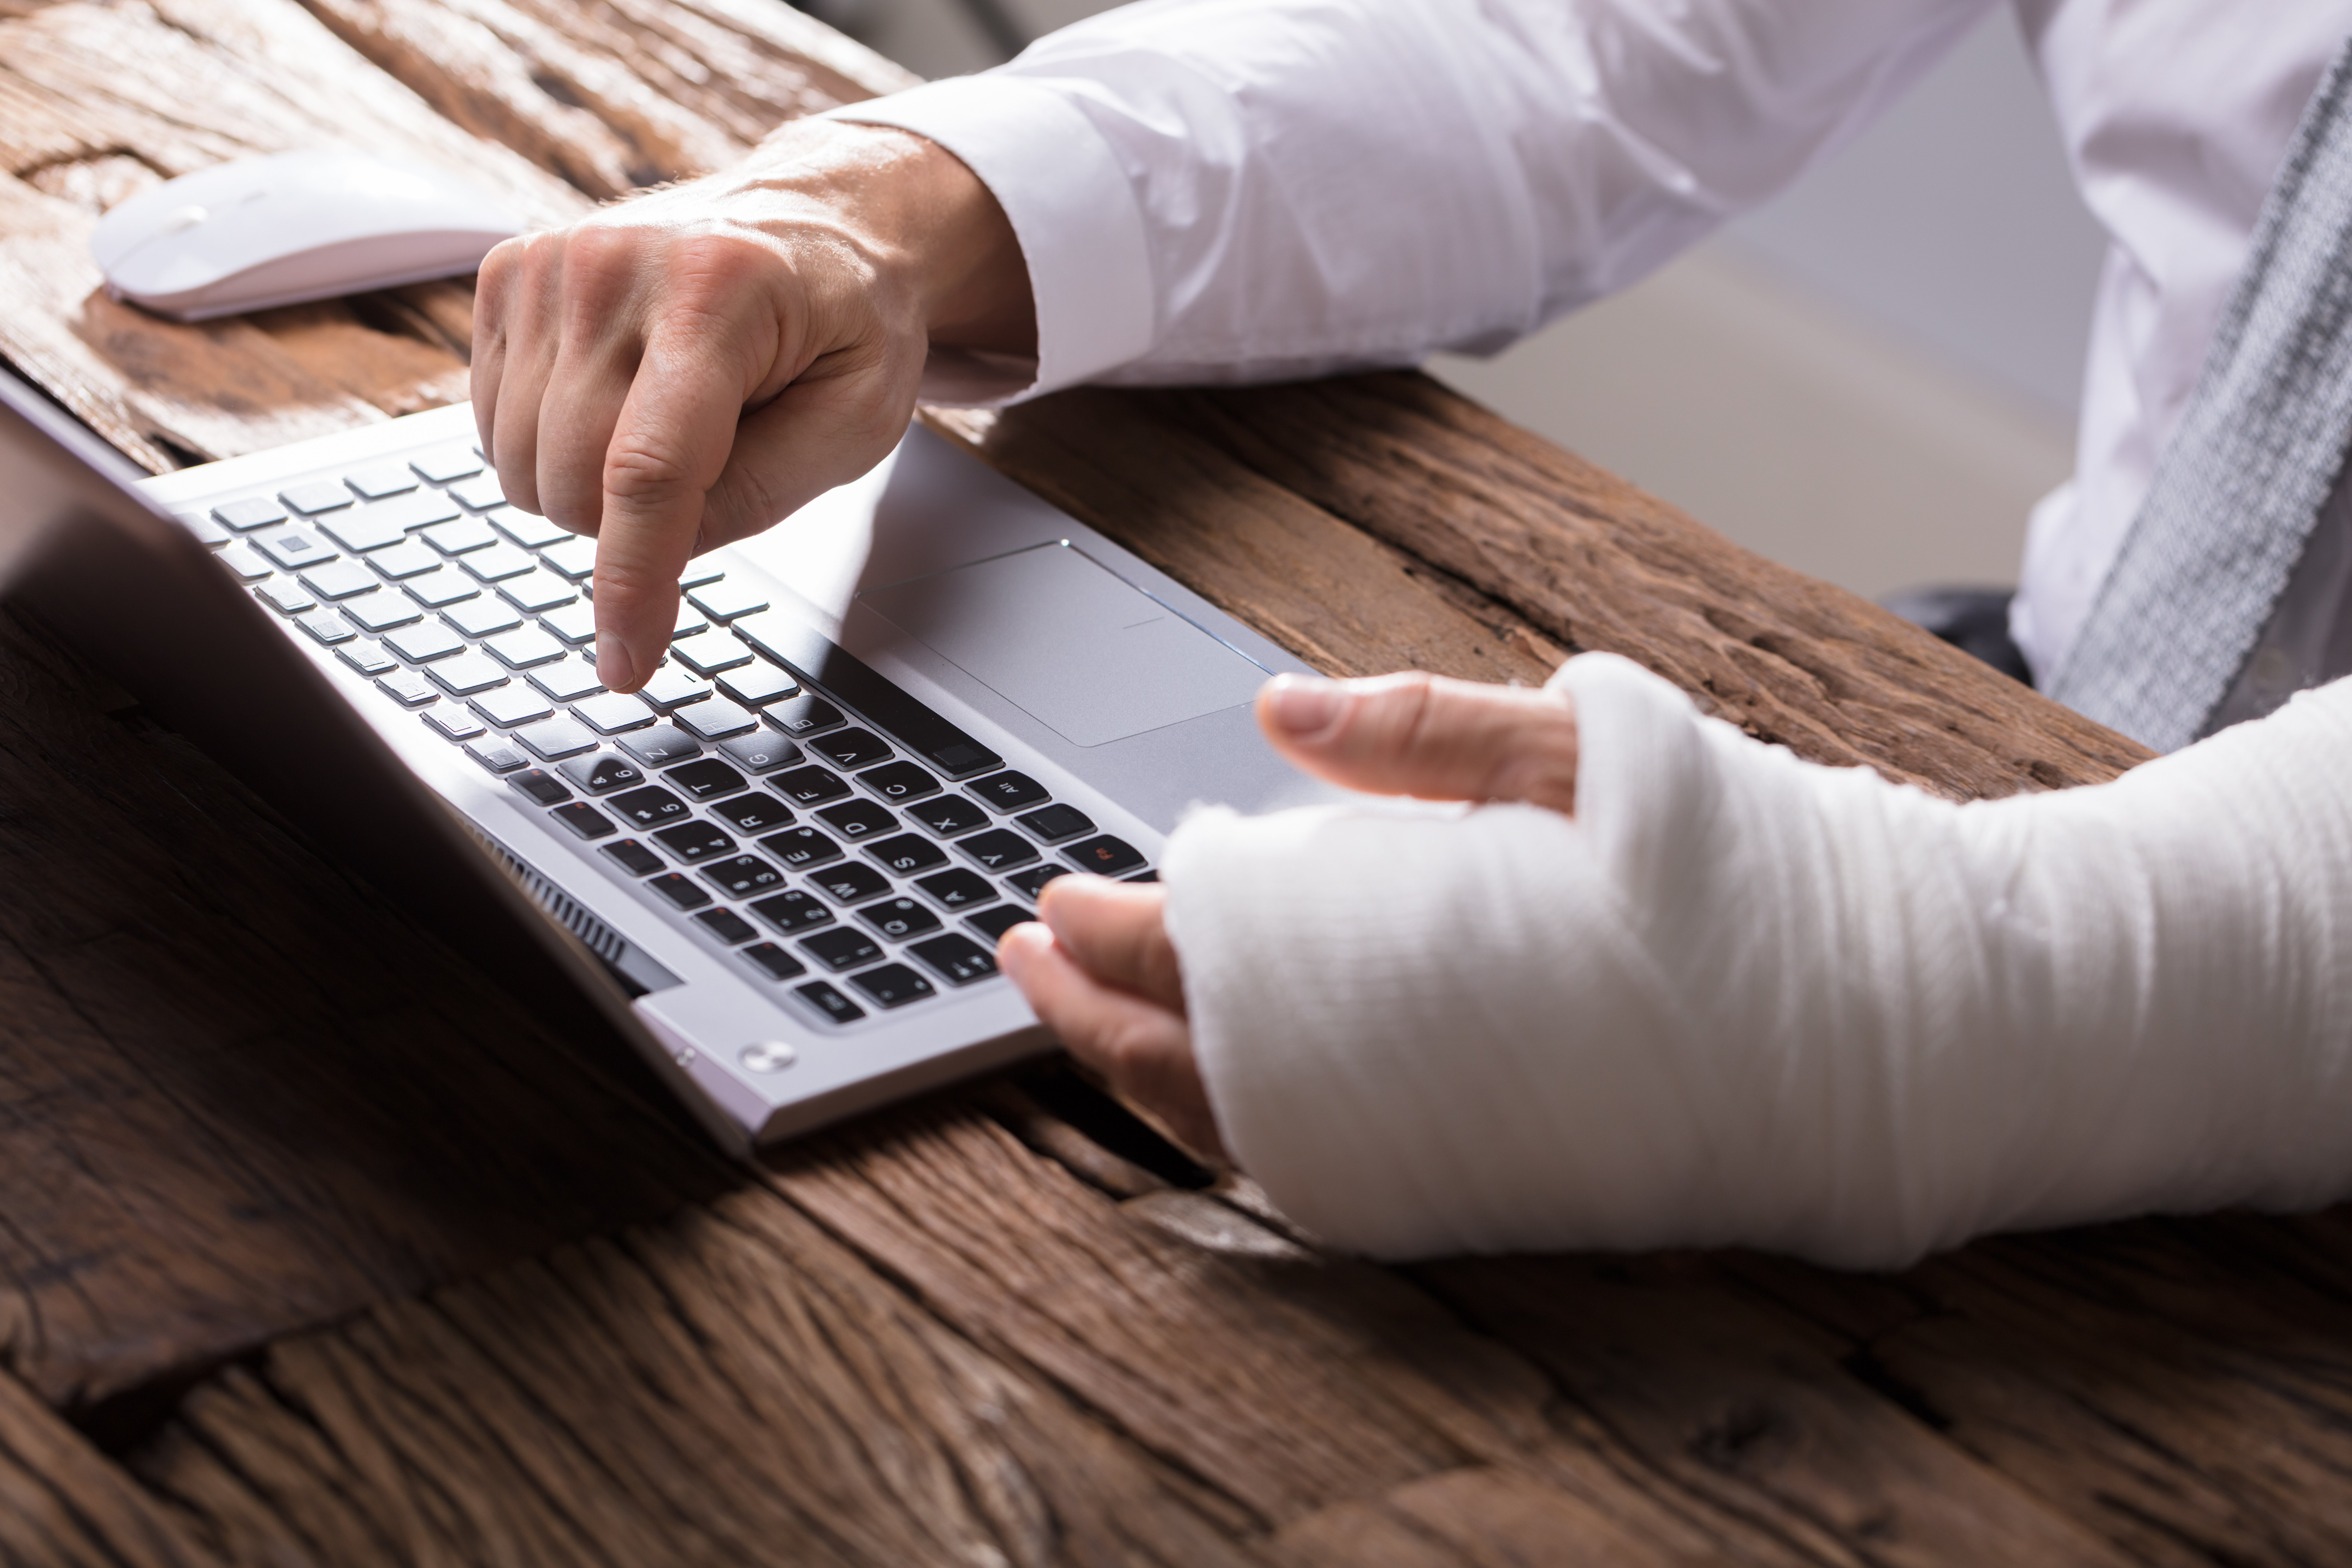 Should I Report My Work Injury?